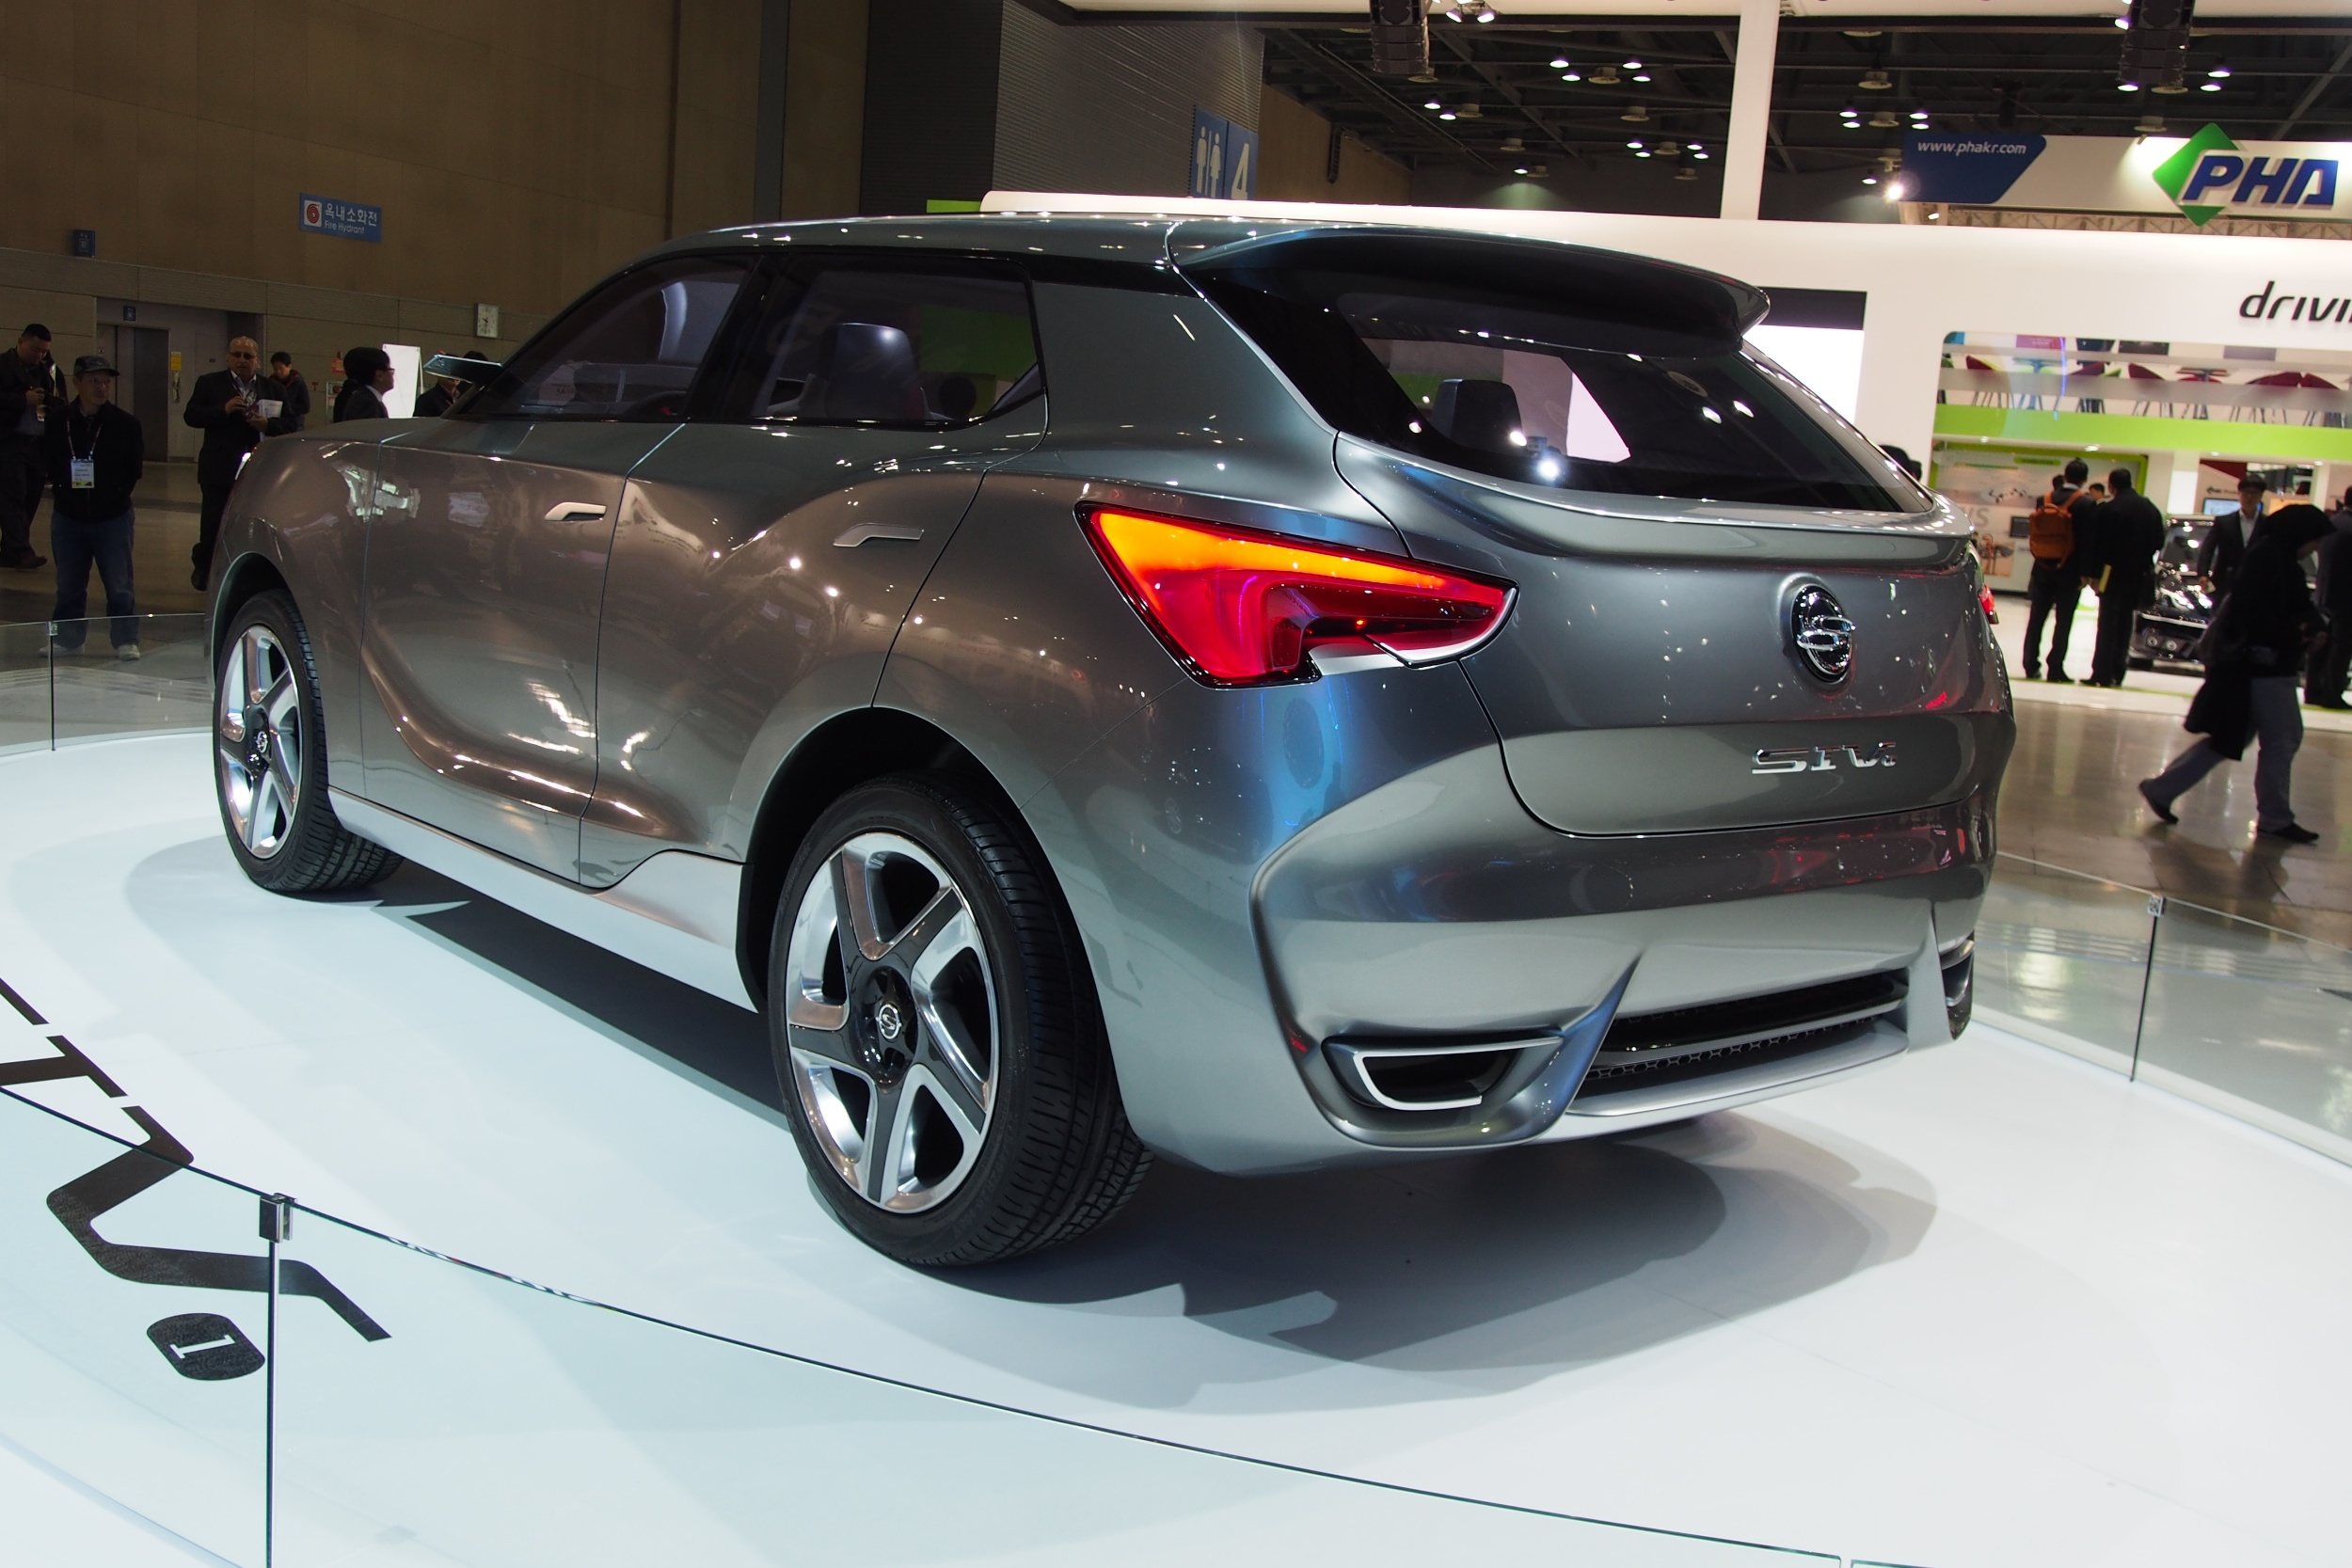 Seoul 2013: <b>SsangYong</b> LIV-1 concept muscles in Image 165033